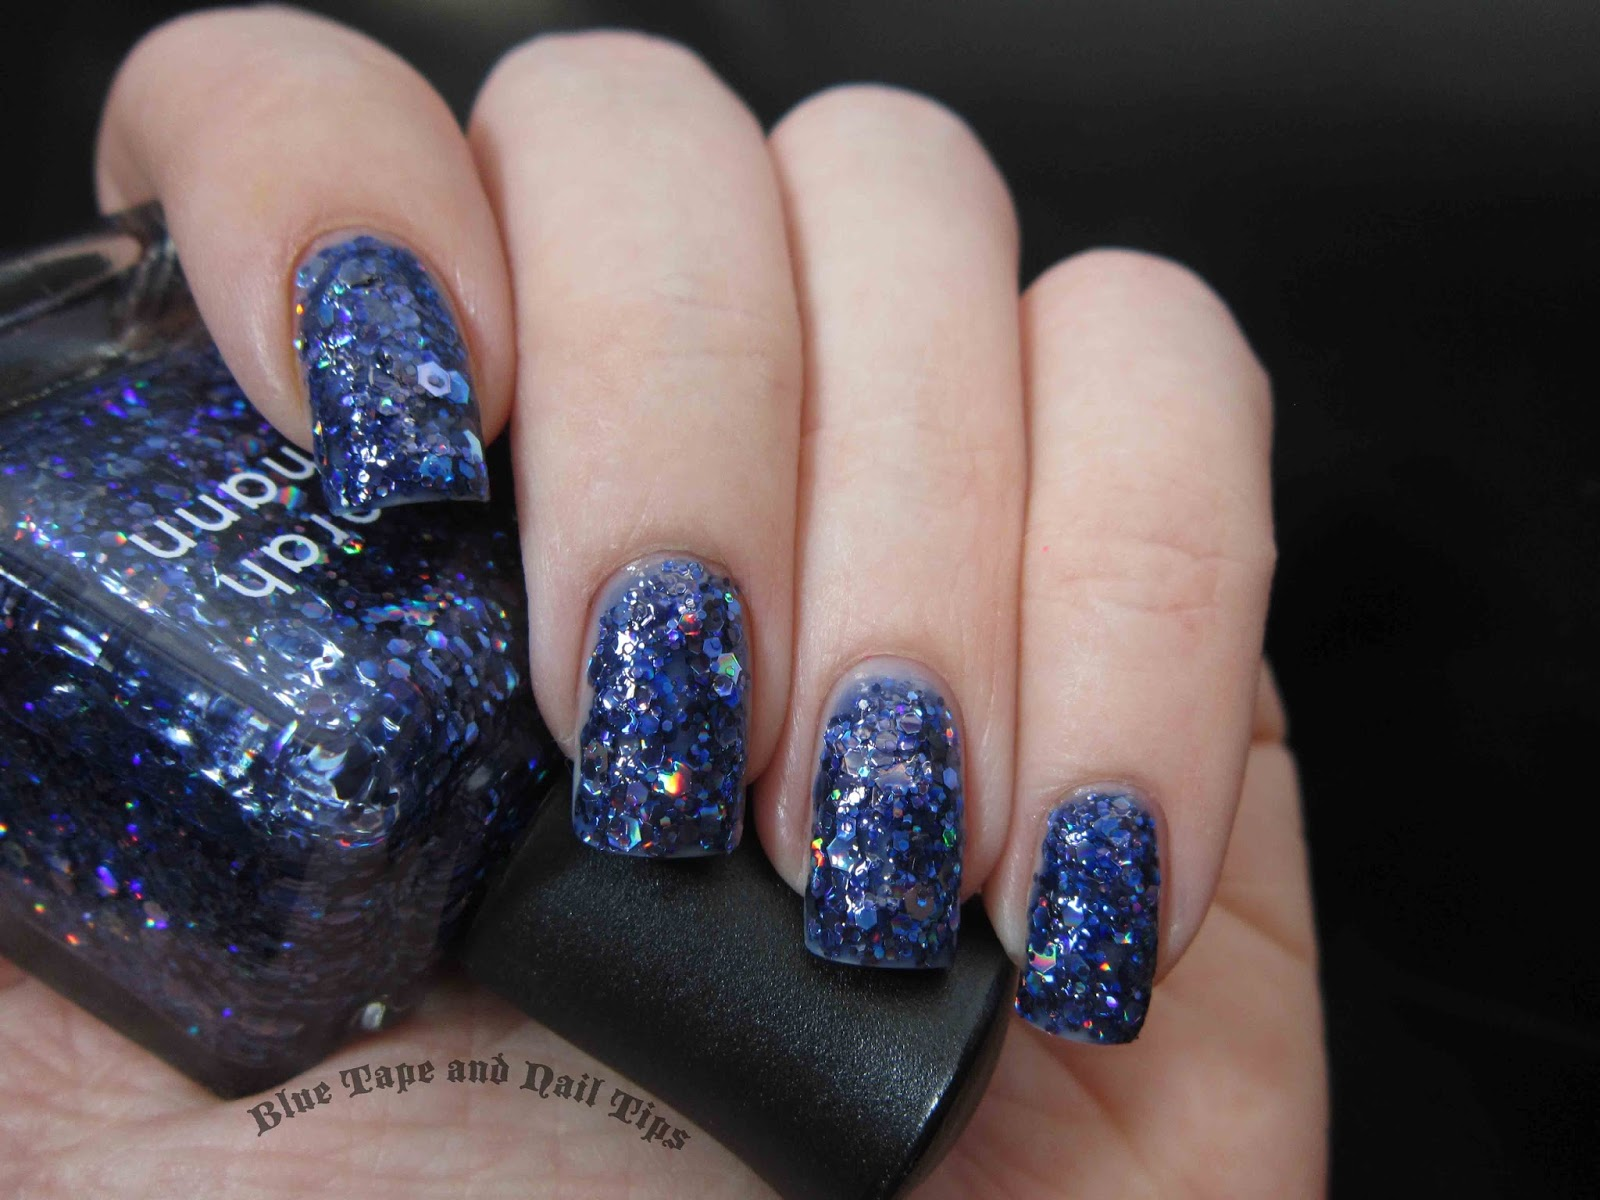 Blue Tape and Nail Tips: Deborah Lippmann Va Va Voom and Rolling in ...